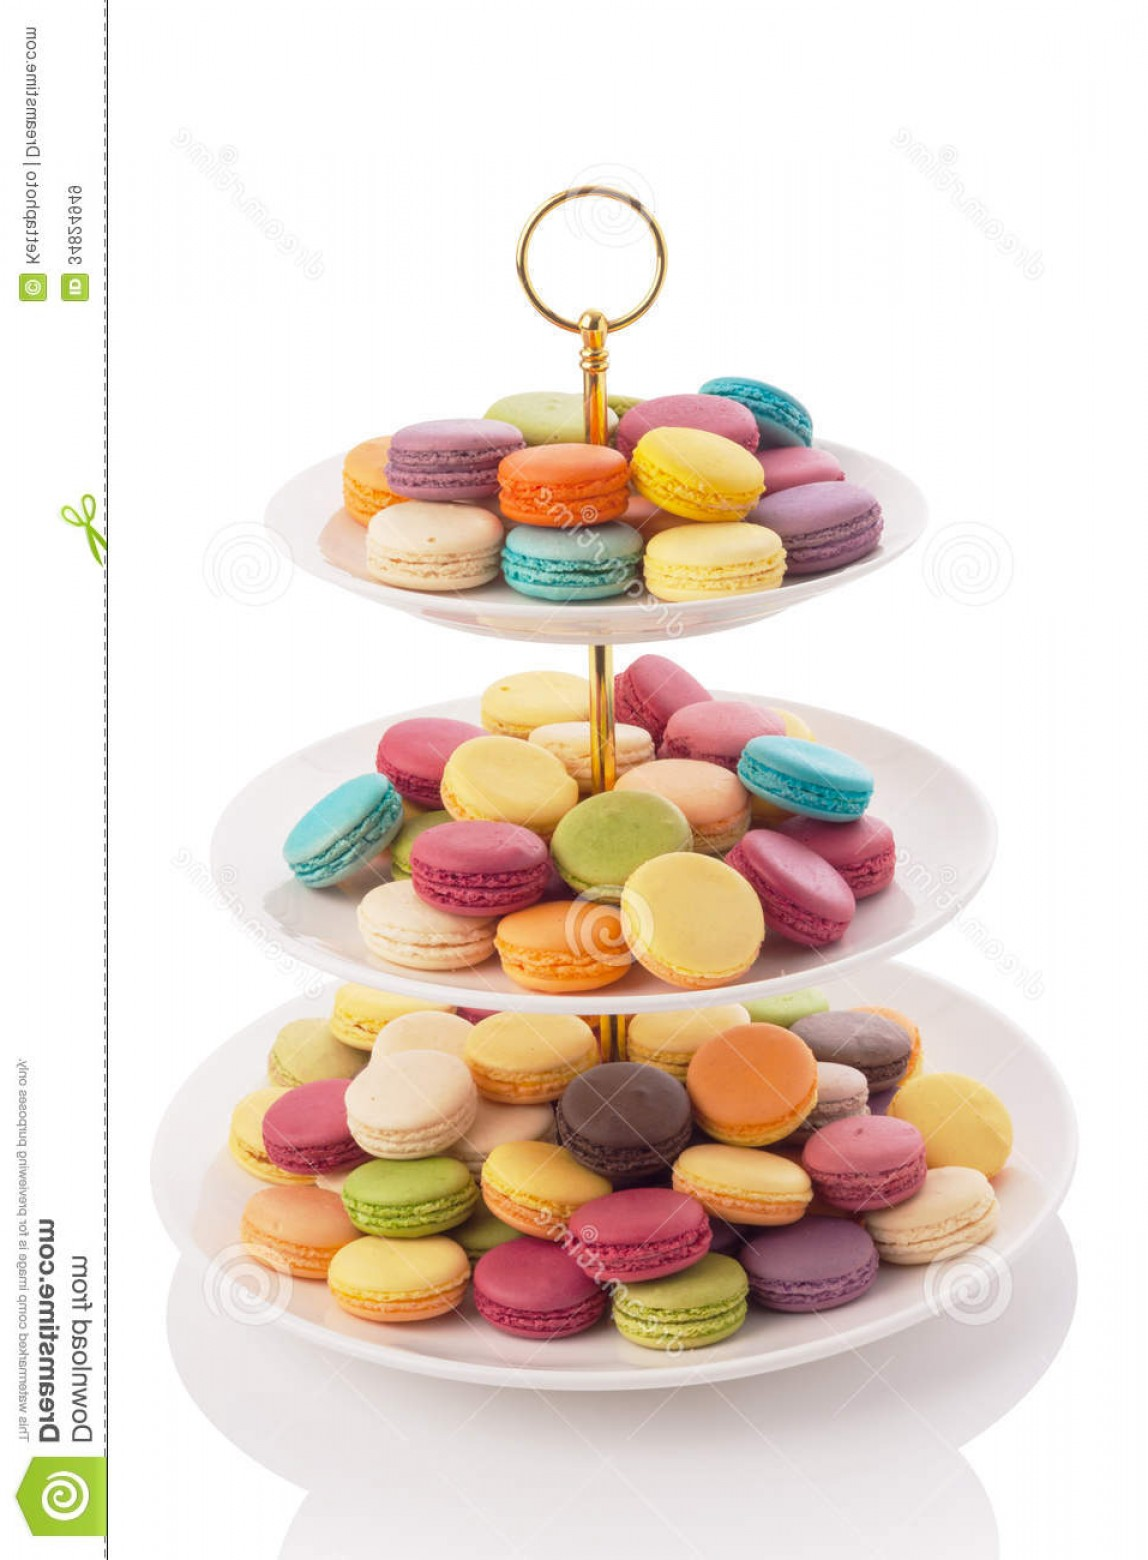 Vector 3 Tier Tray: Royalty Free Stock Images Macarons Three Tier Serving Tray Isolated White Image